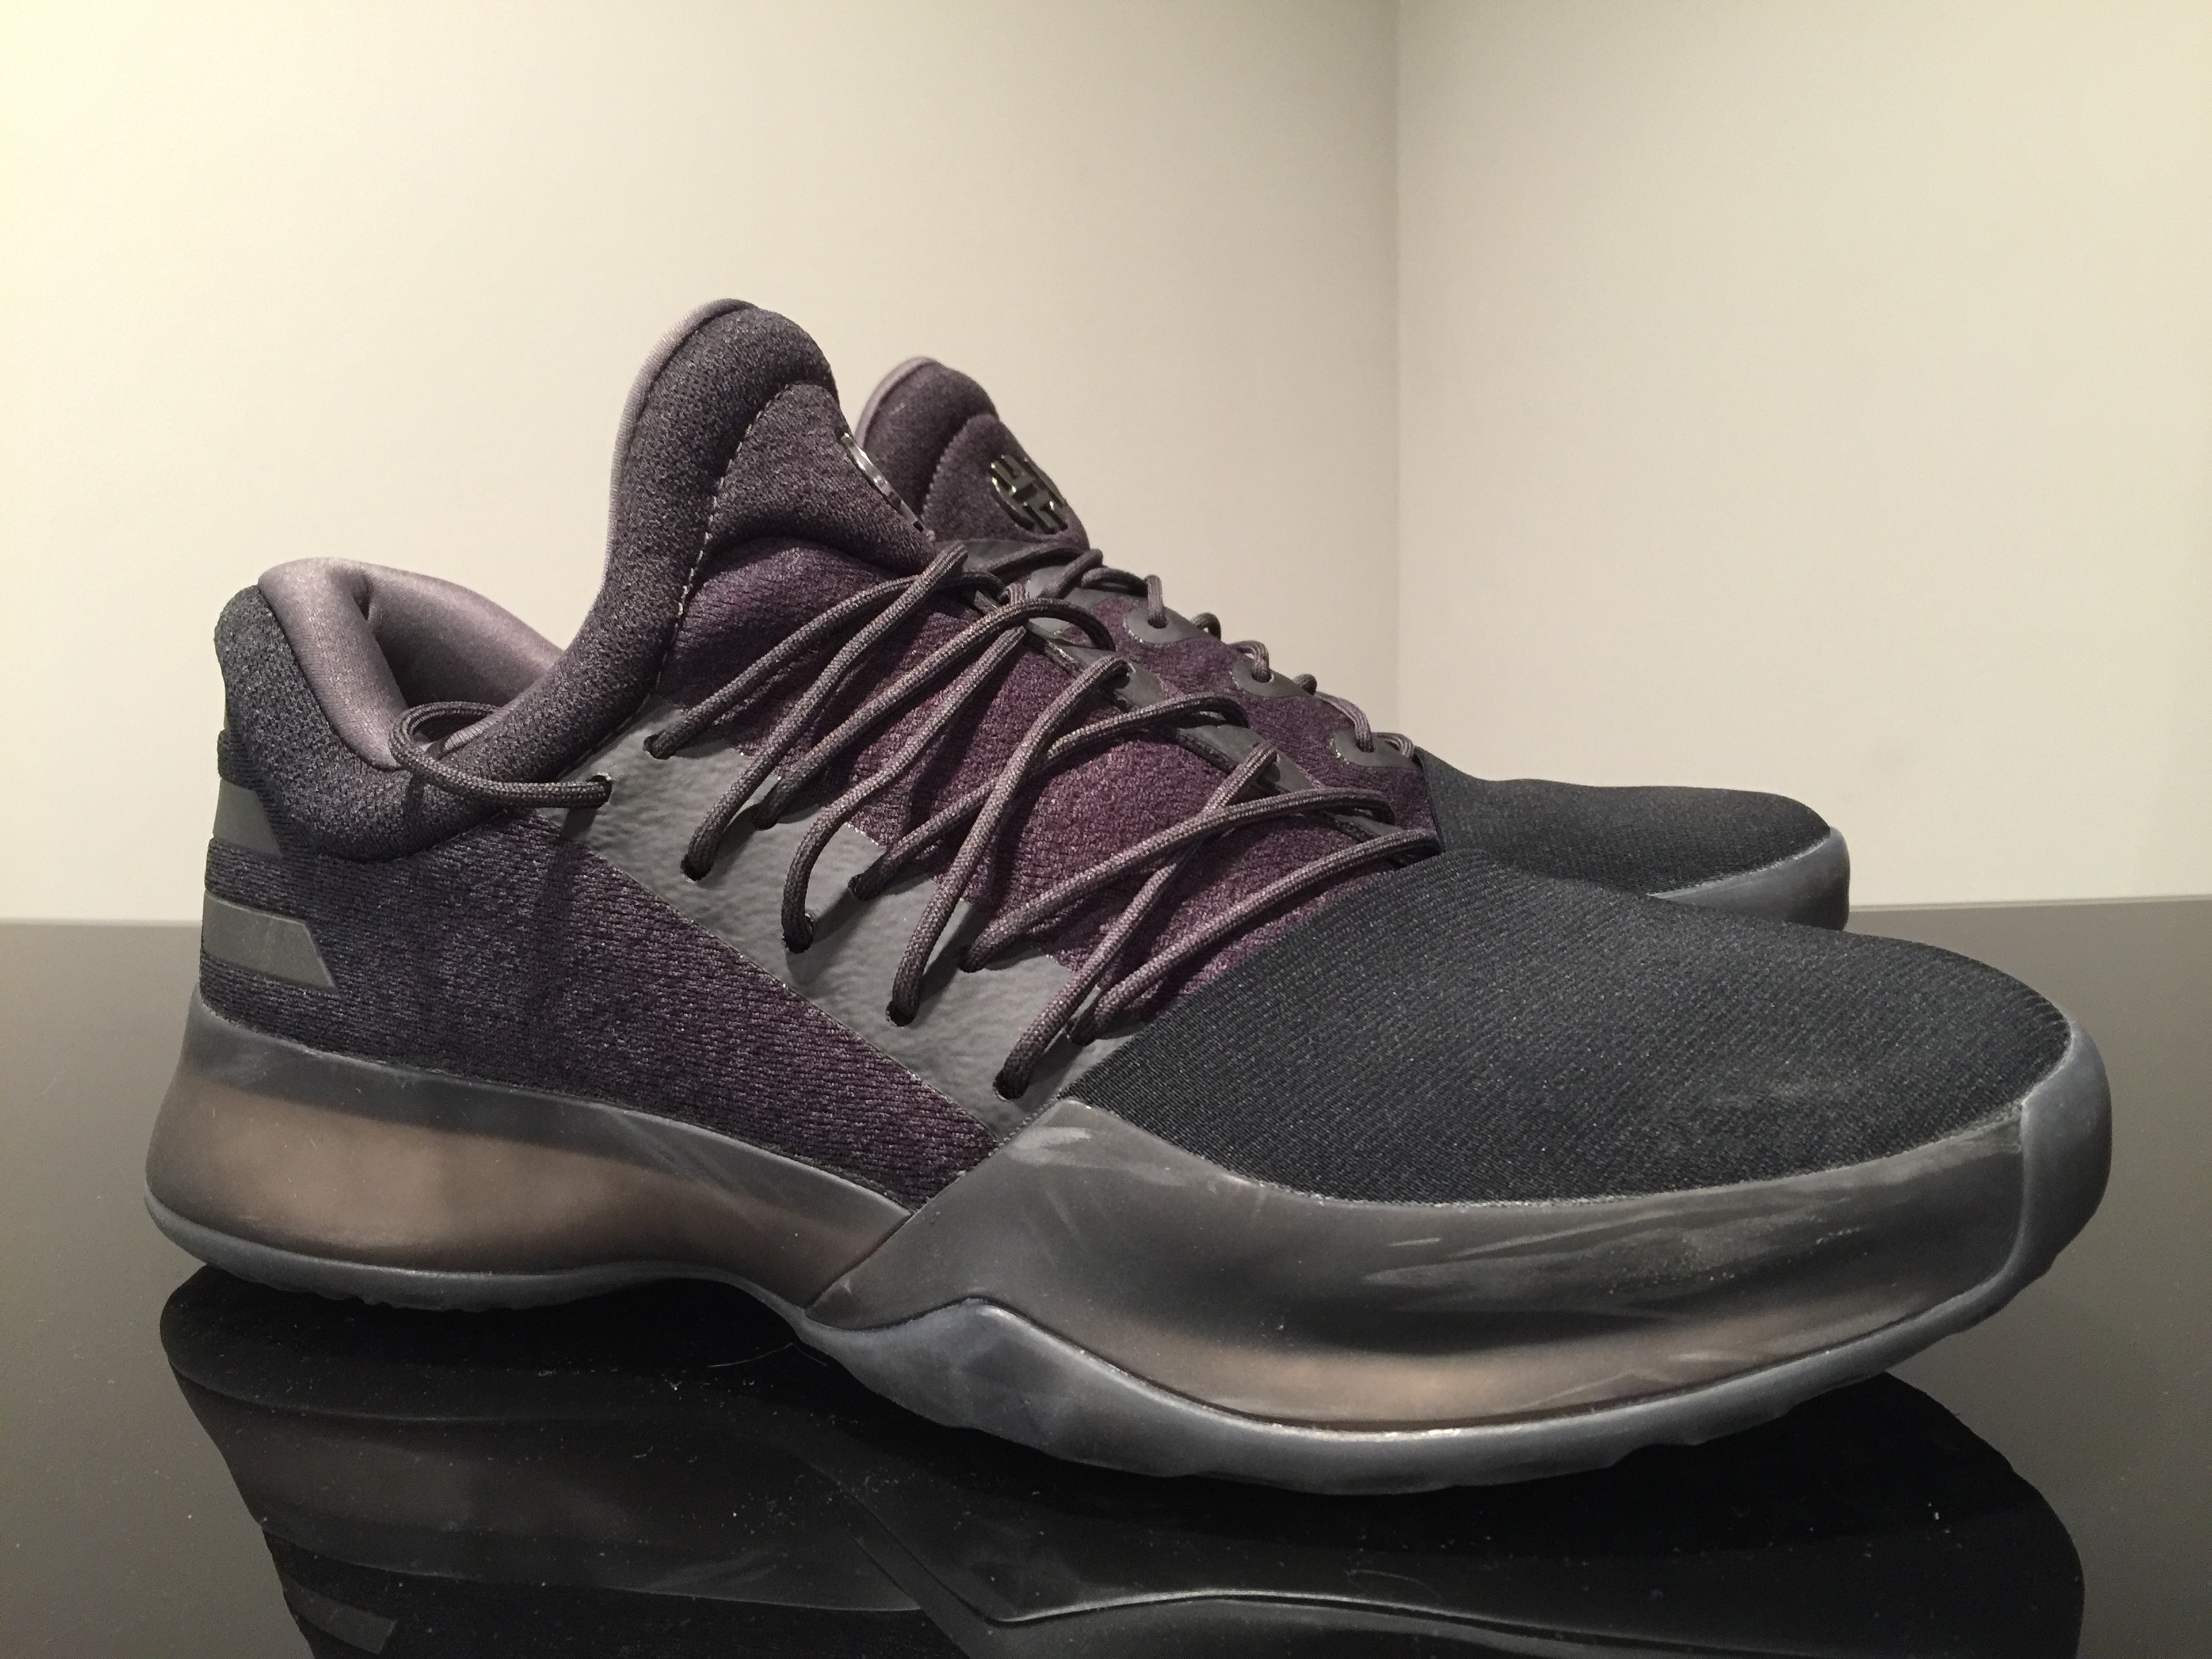 save off 5f56f 6c80f adidas Harden Vol. 1 Performance Review   The Gym Rat Review